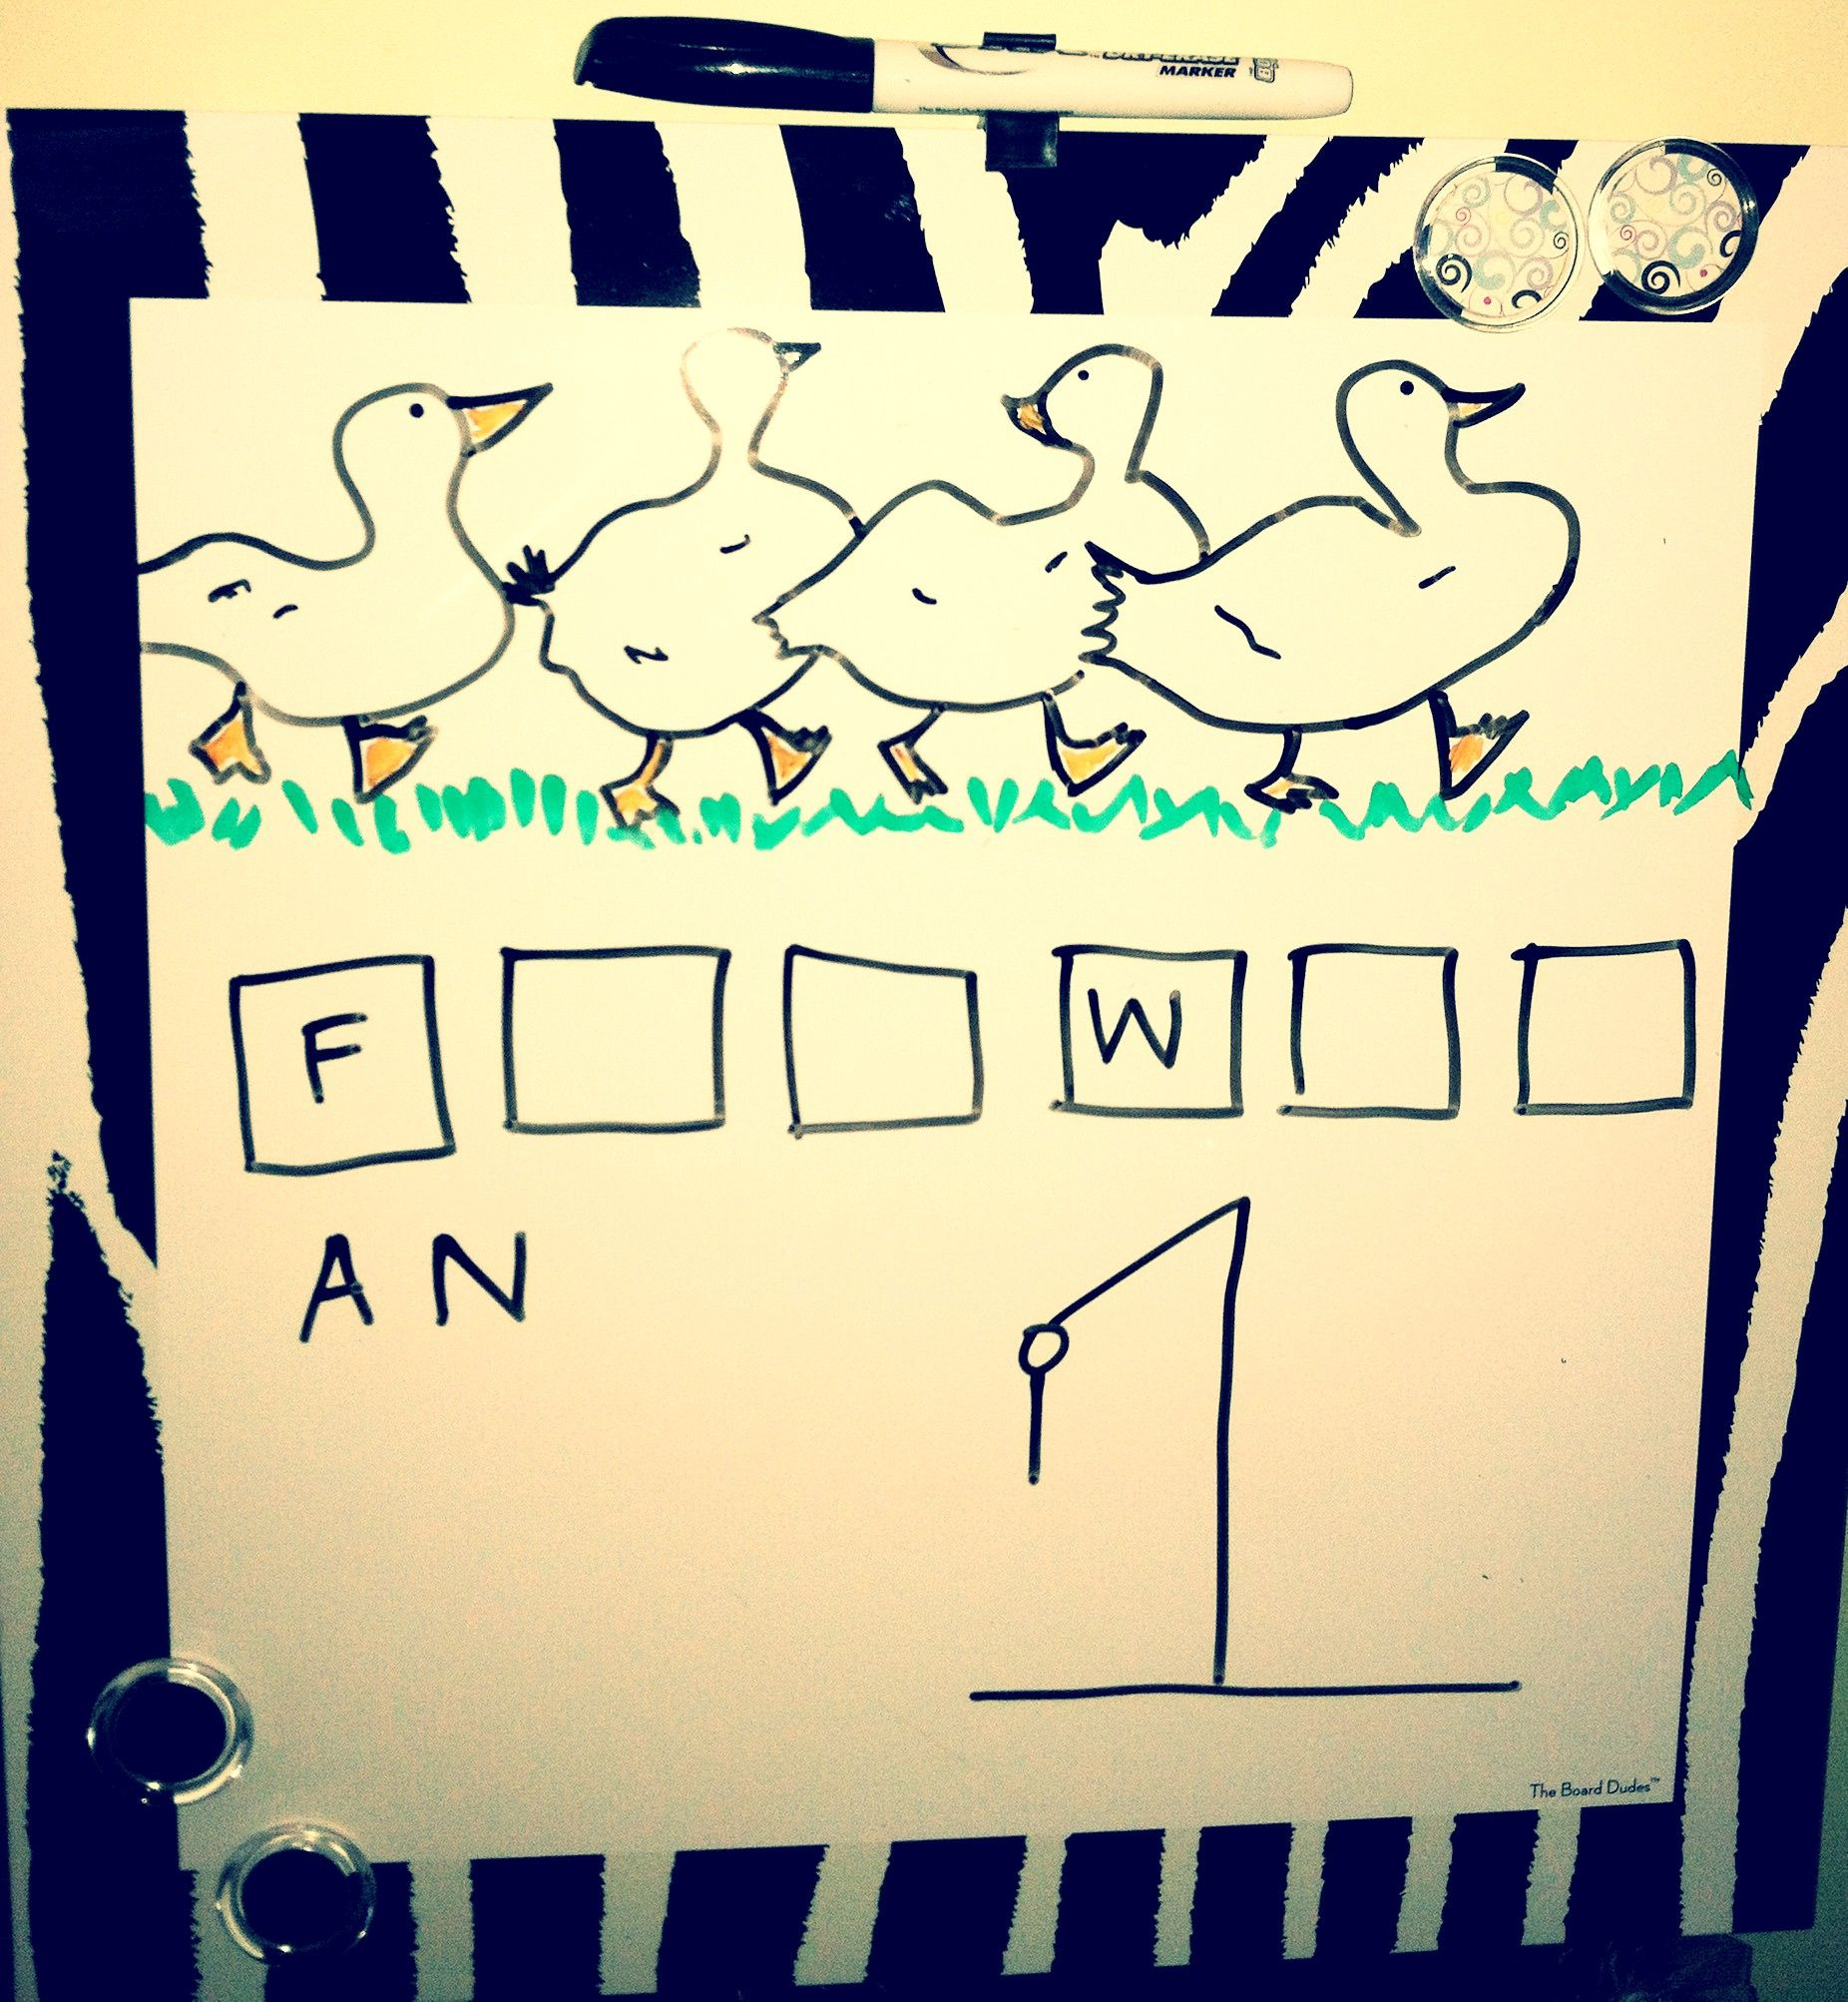 Play fun Easter themed hangman games on a dry erase board